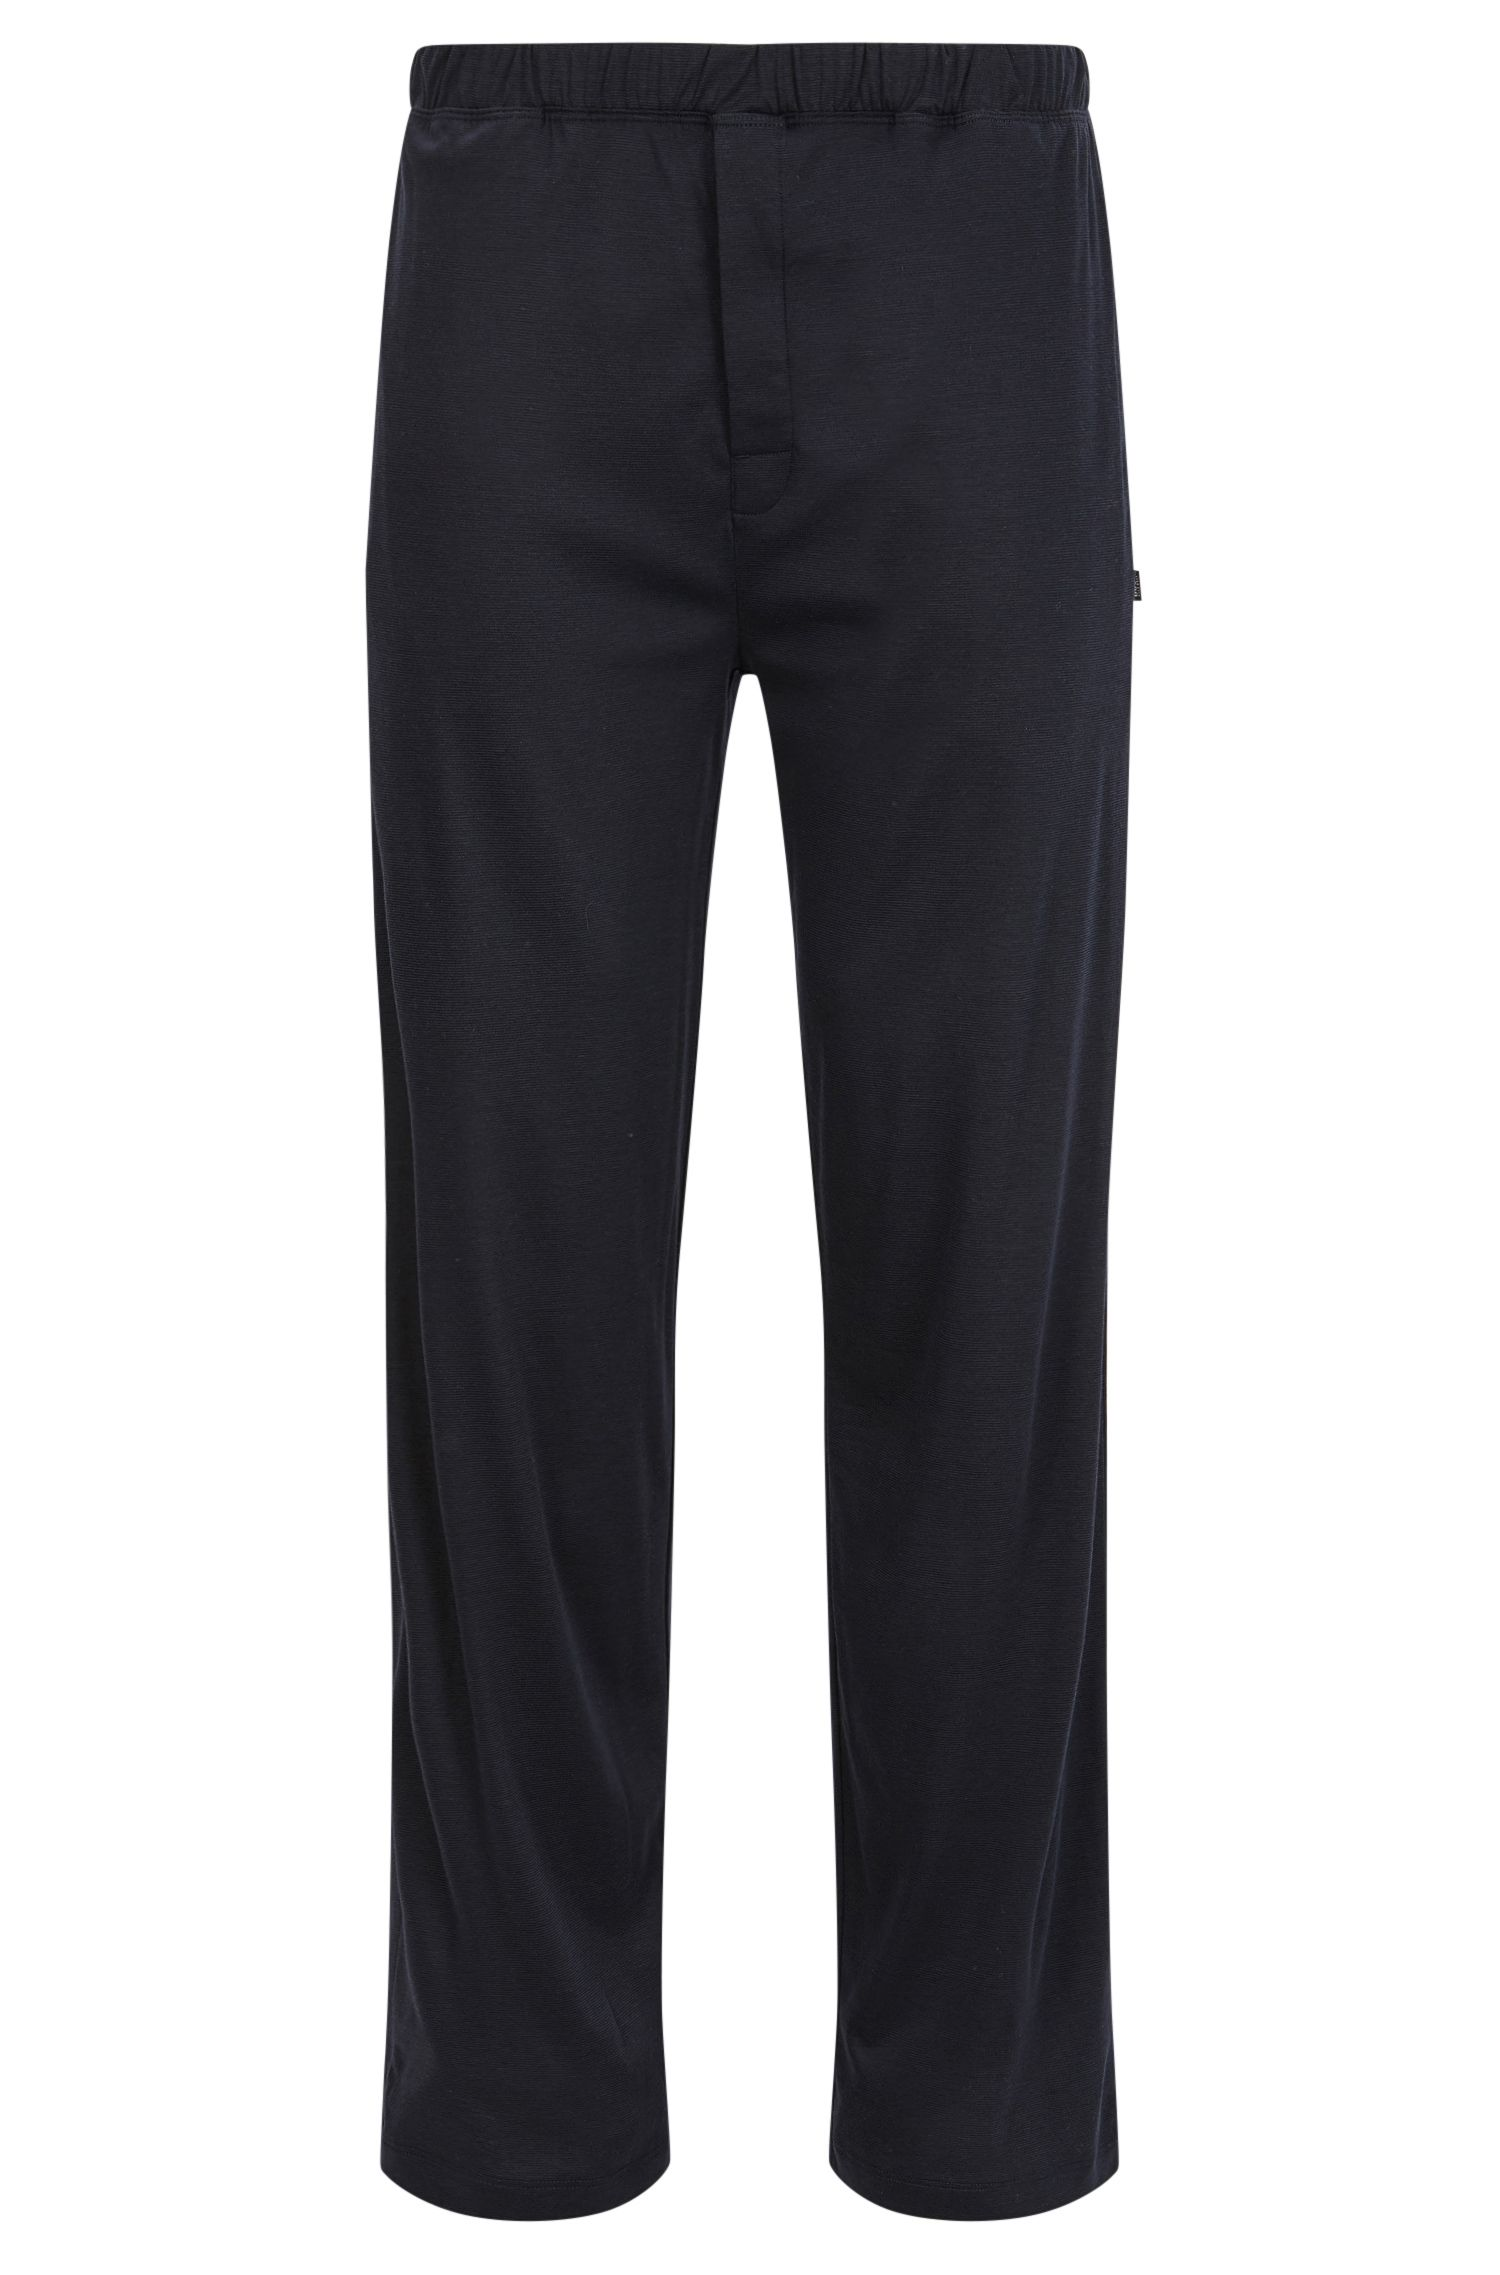 Pyjama bottoms in cotton-modal single jersey